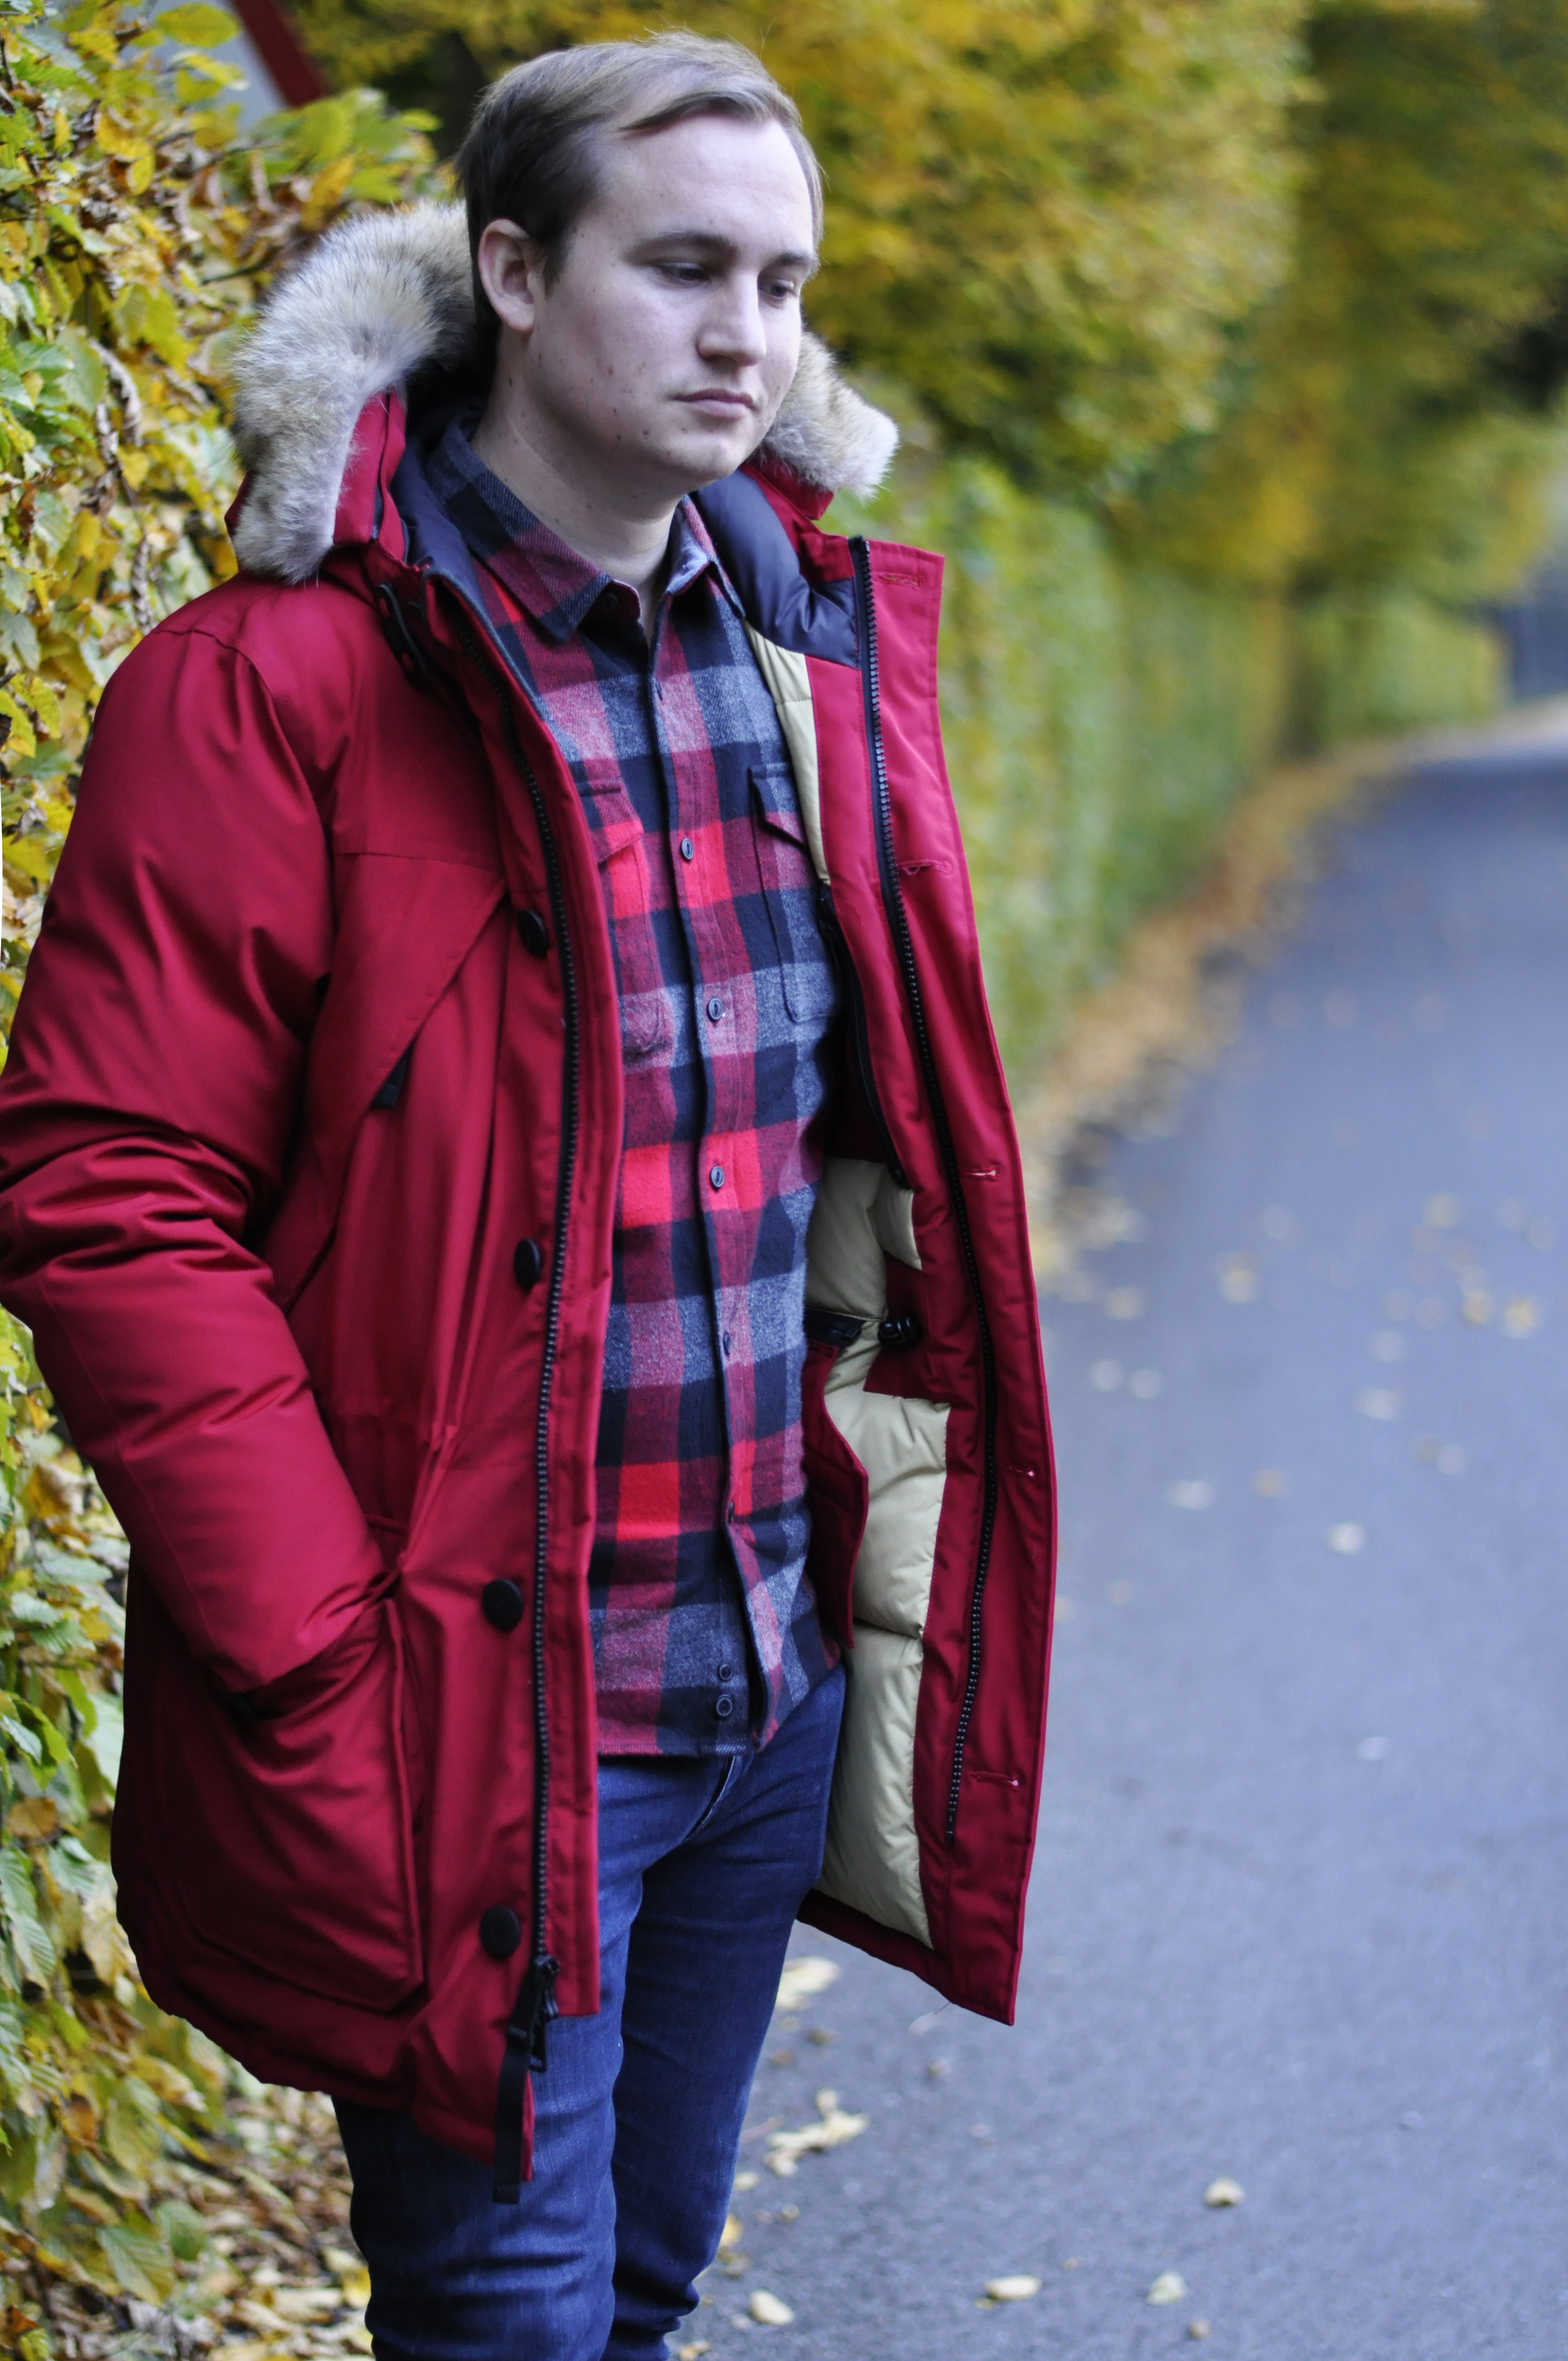 penfield098